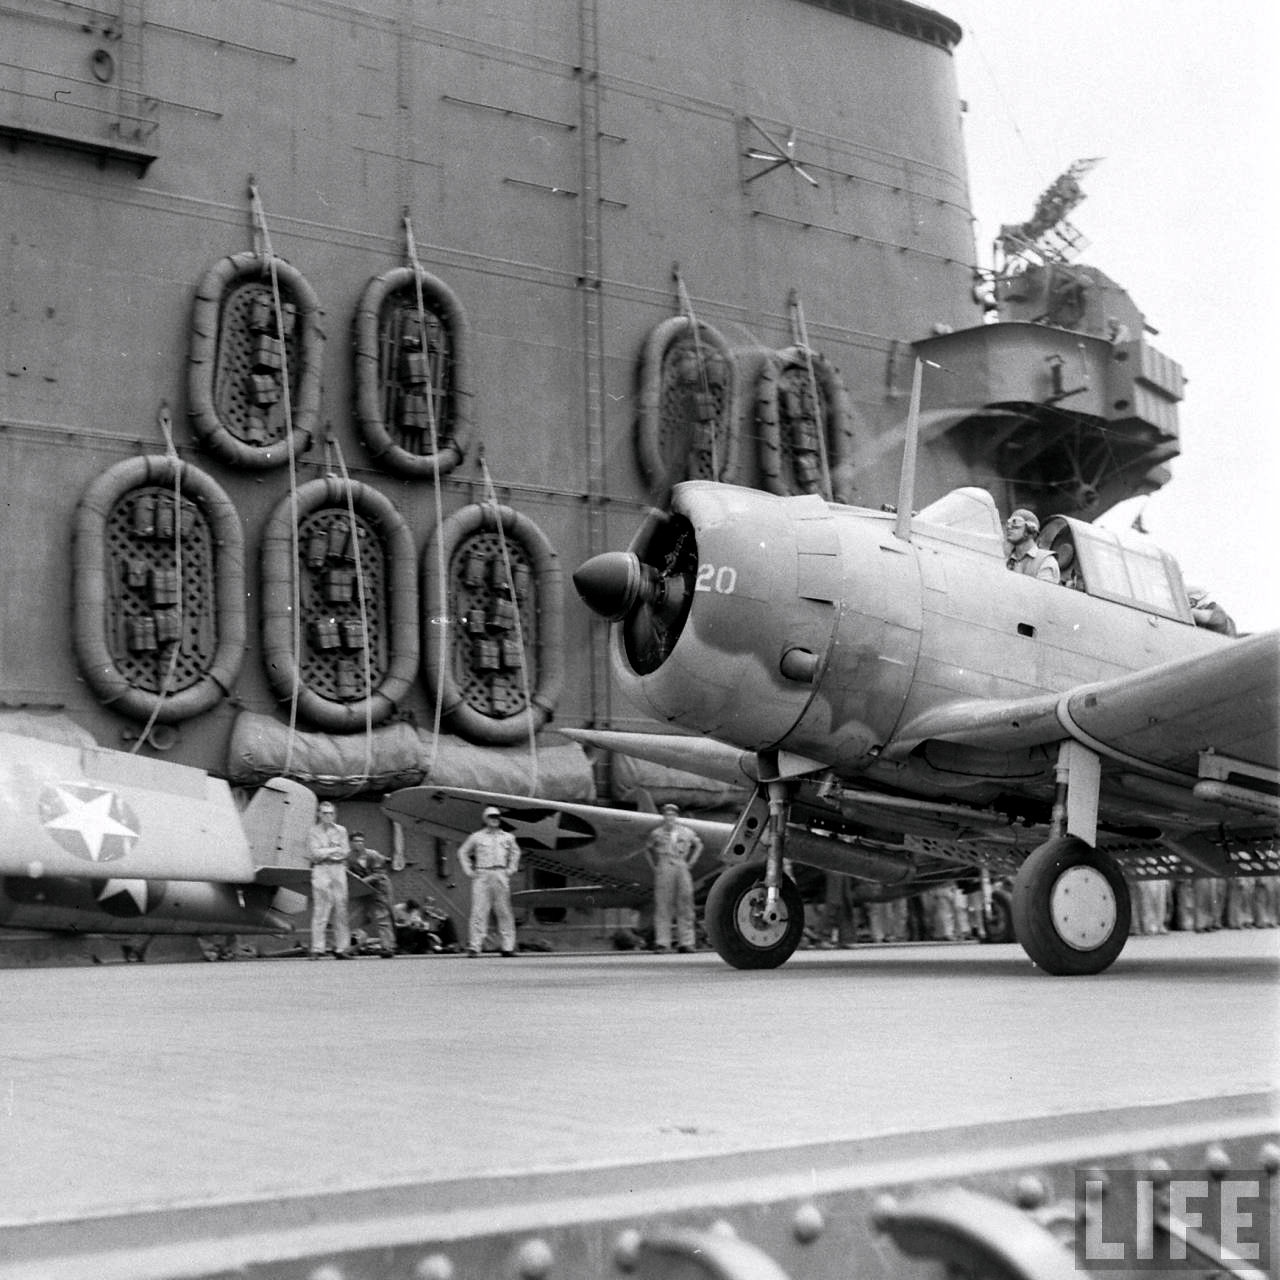 Douglas SBD 3 Dauntless White 20 taxing aboard a USS Carrier Sep 1942 01